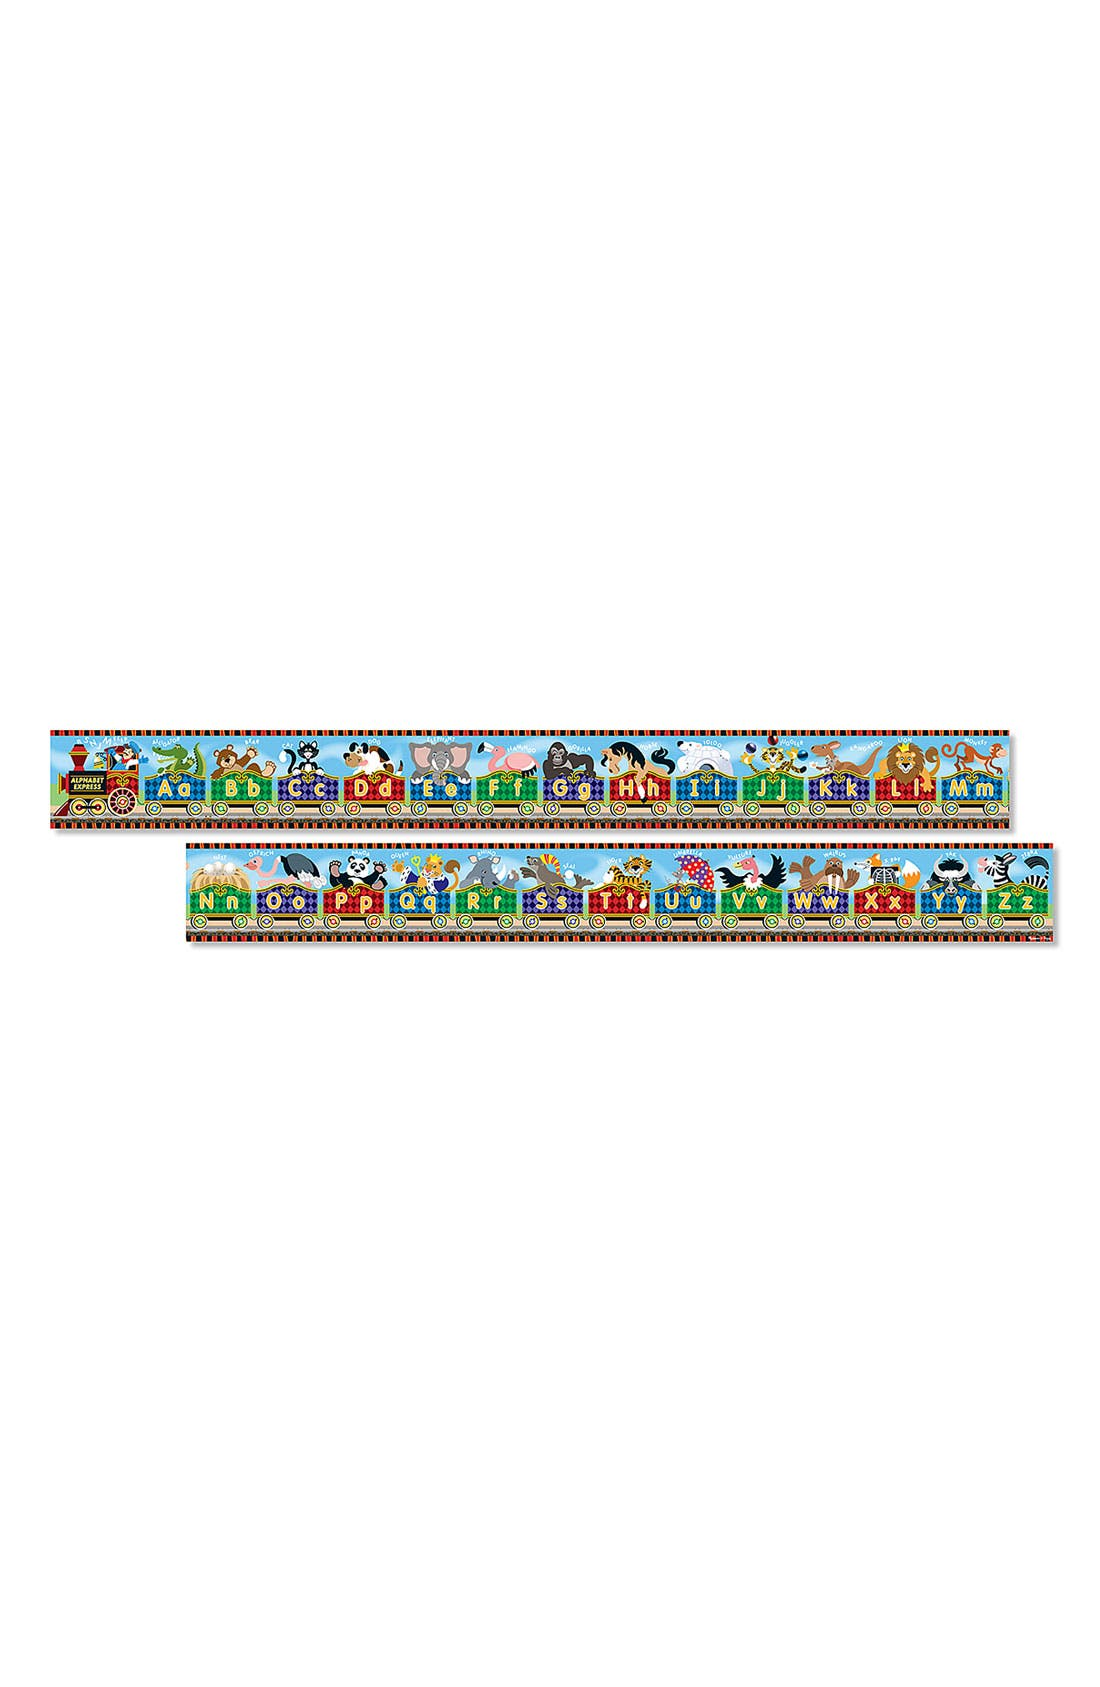 Alternate Image 1 Selected - Melissa & Doug Floor Puzzle